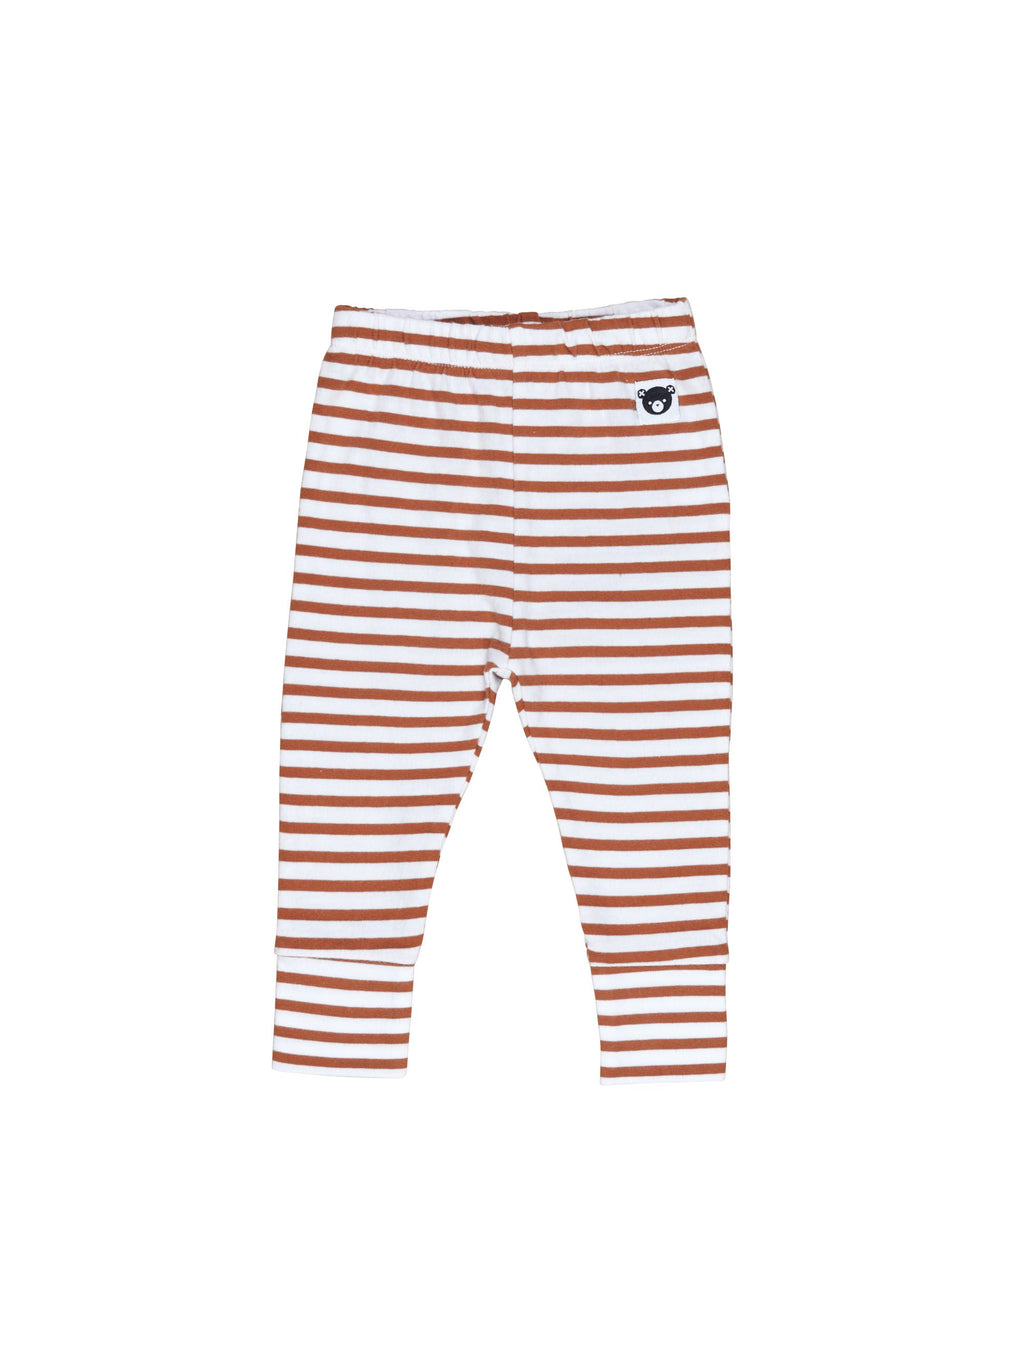 Huxbaby Terracotta Stripe Leggings - HB1821